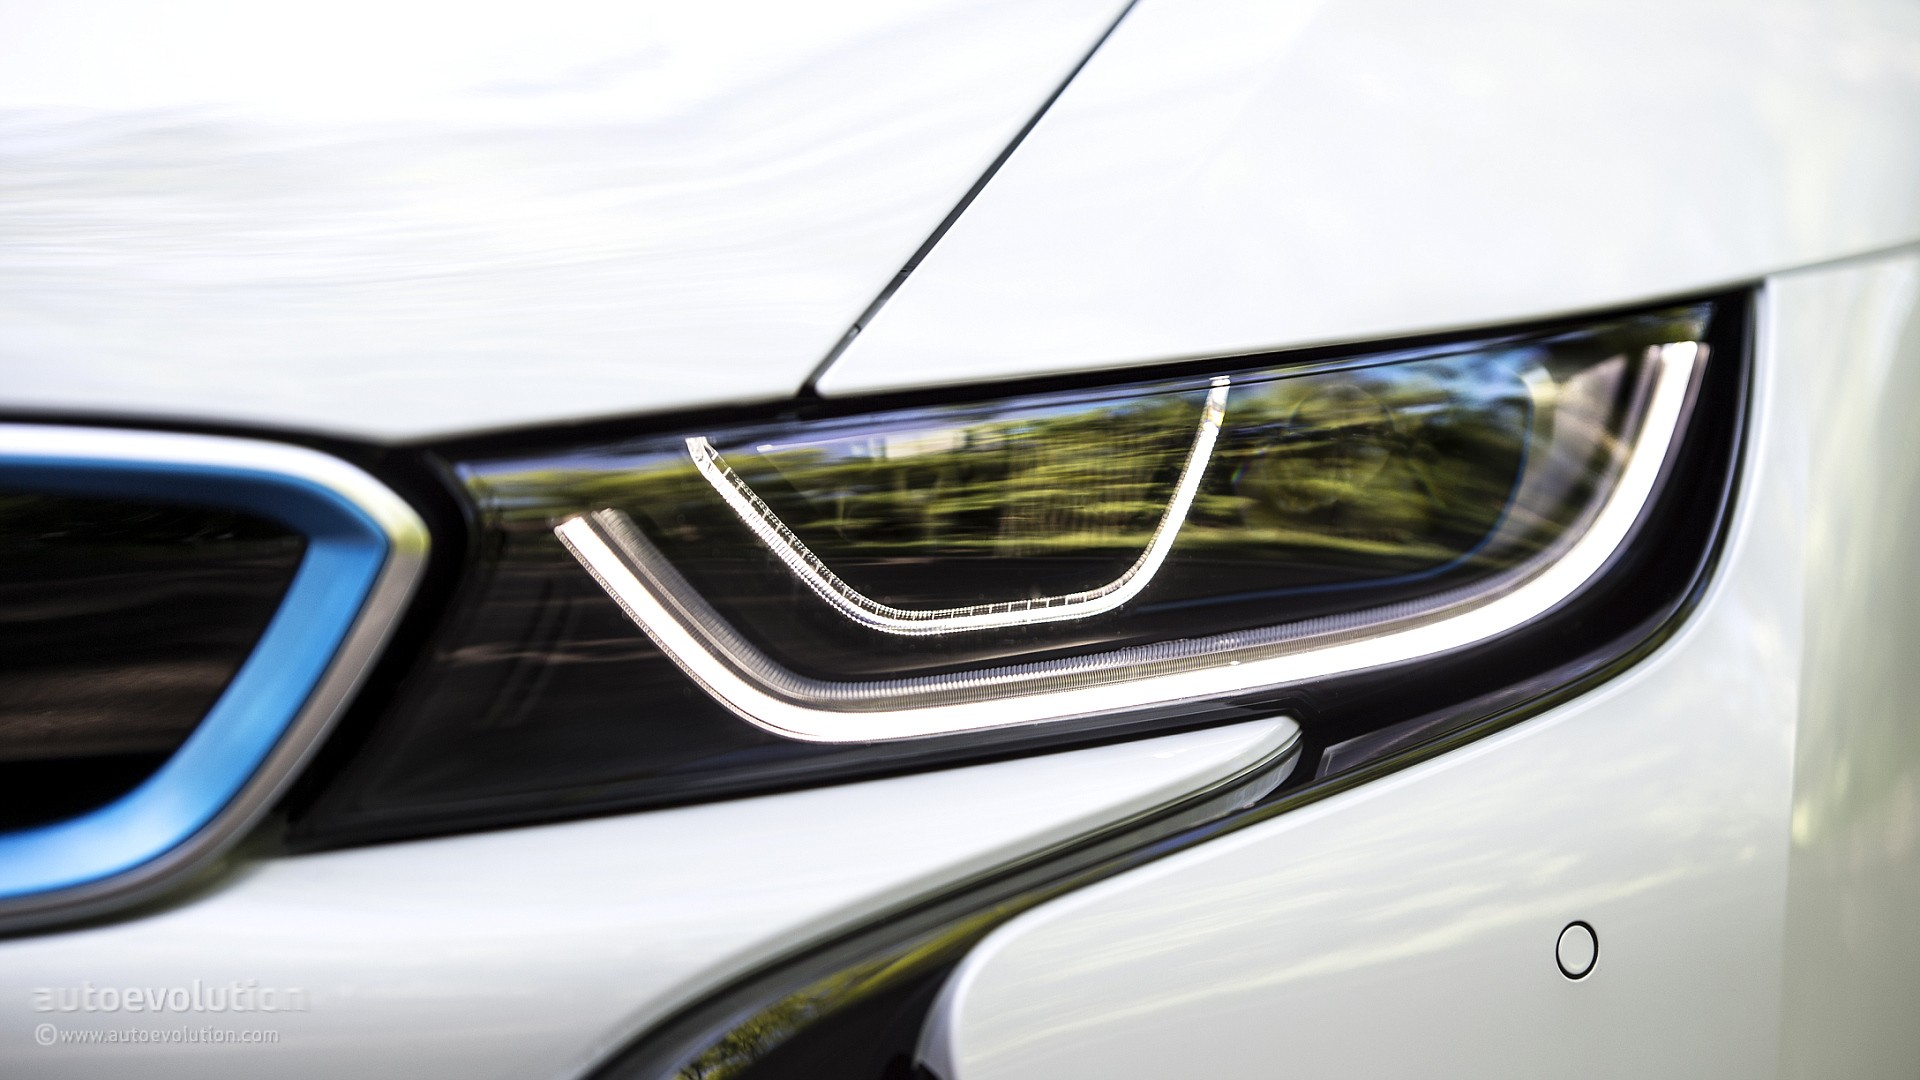 Laser Lights For The Bmw I8 Coming To The Us This November With